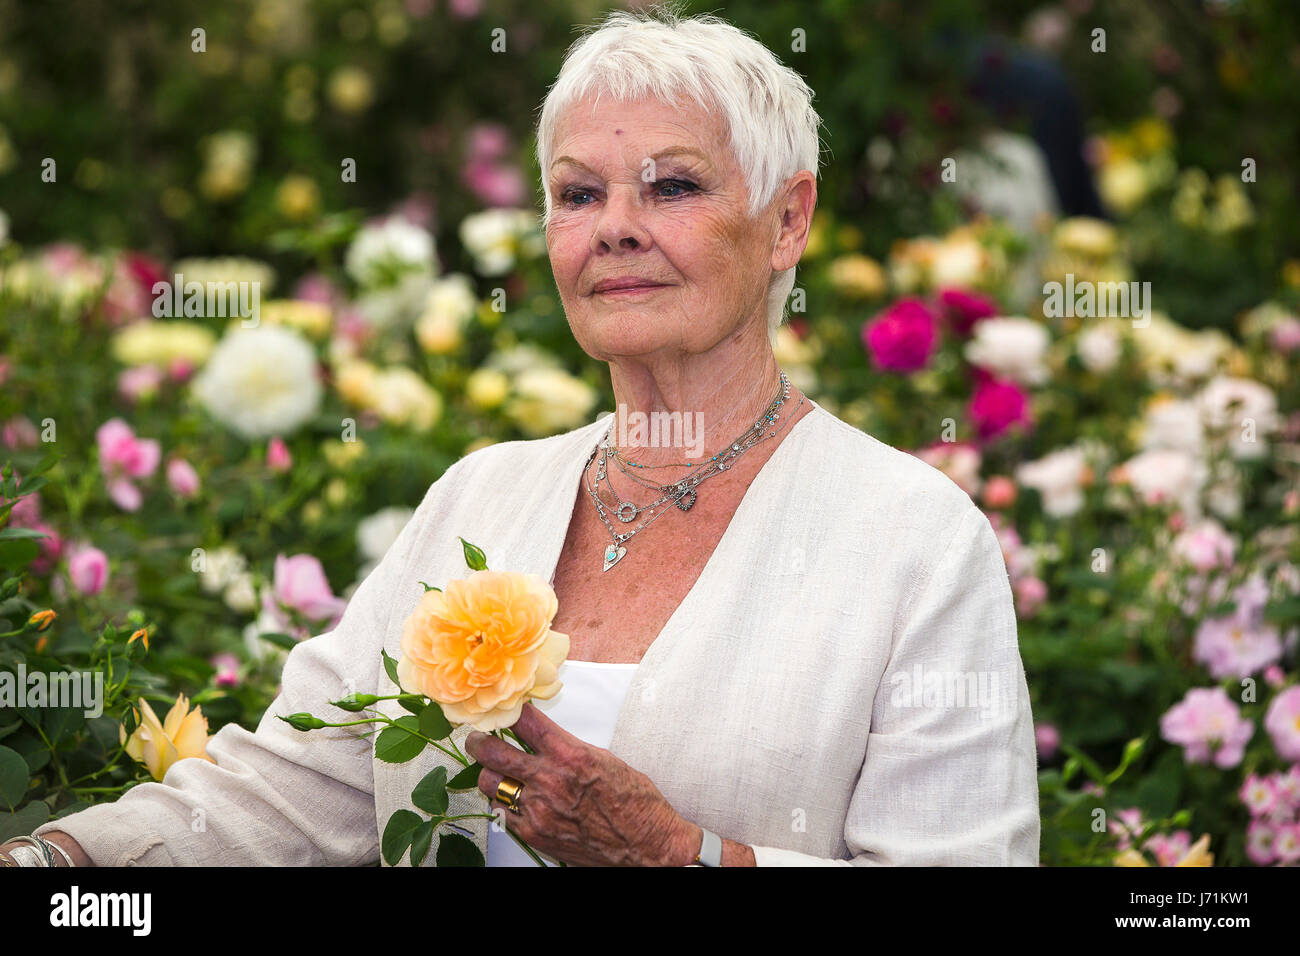 Chelsea London, UK. 22nd May, 2017. RHS Chelsea Flower Show. Dame Judy Dench poses with a rose which has been named Stock Photo